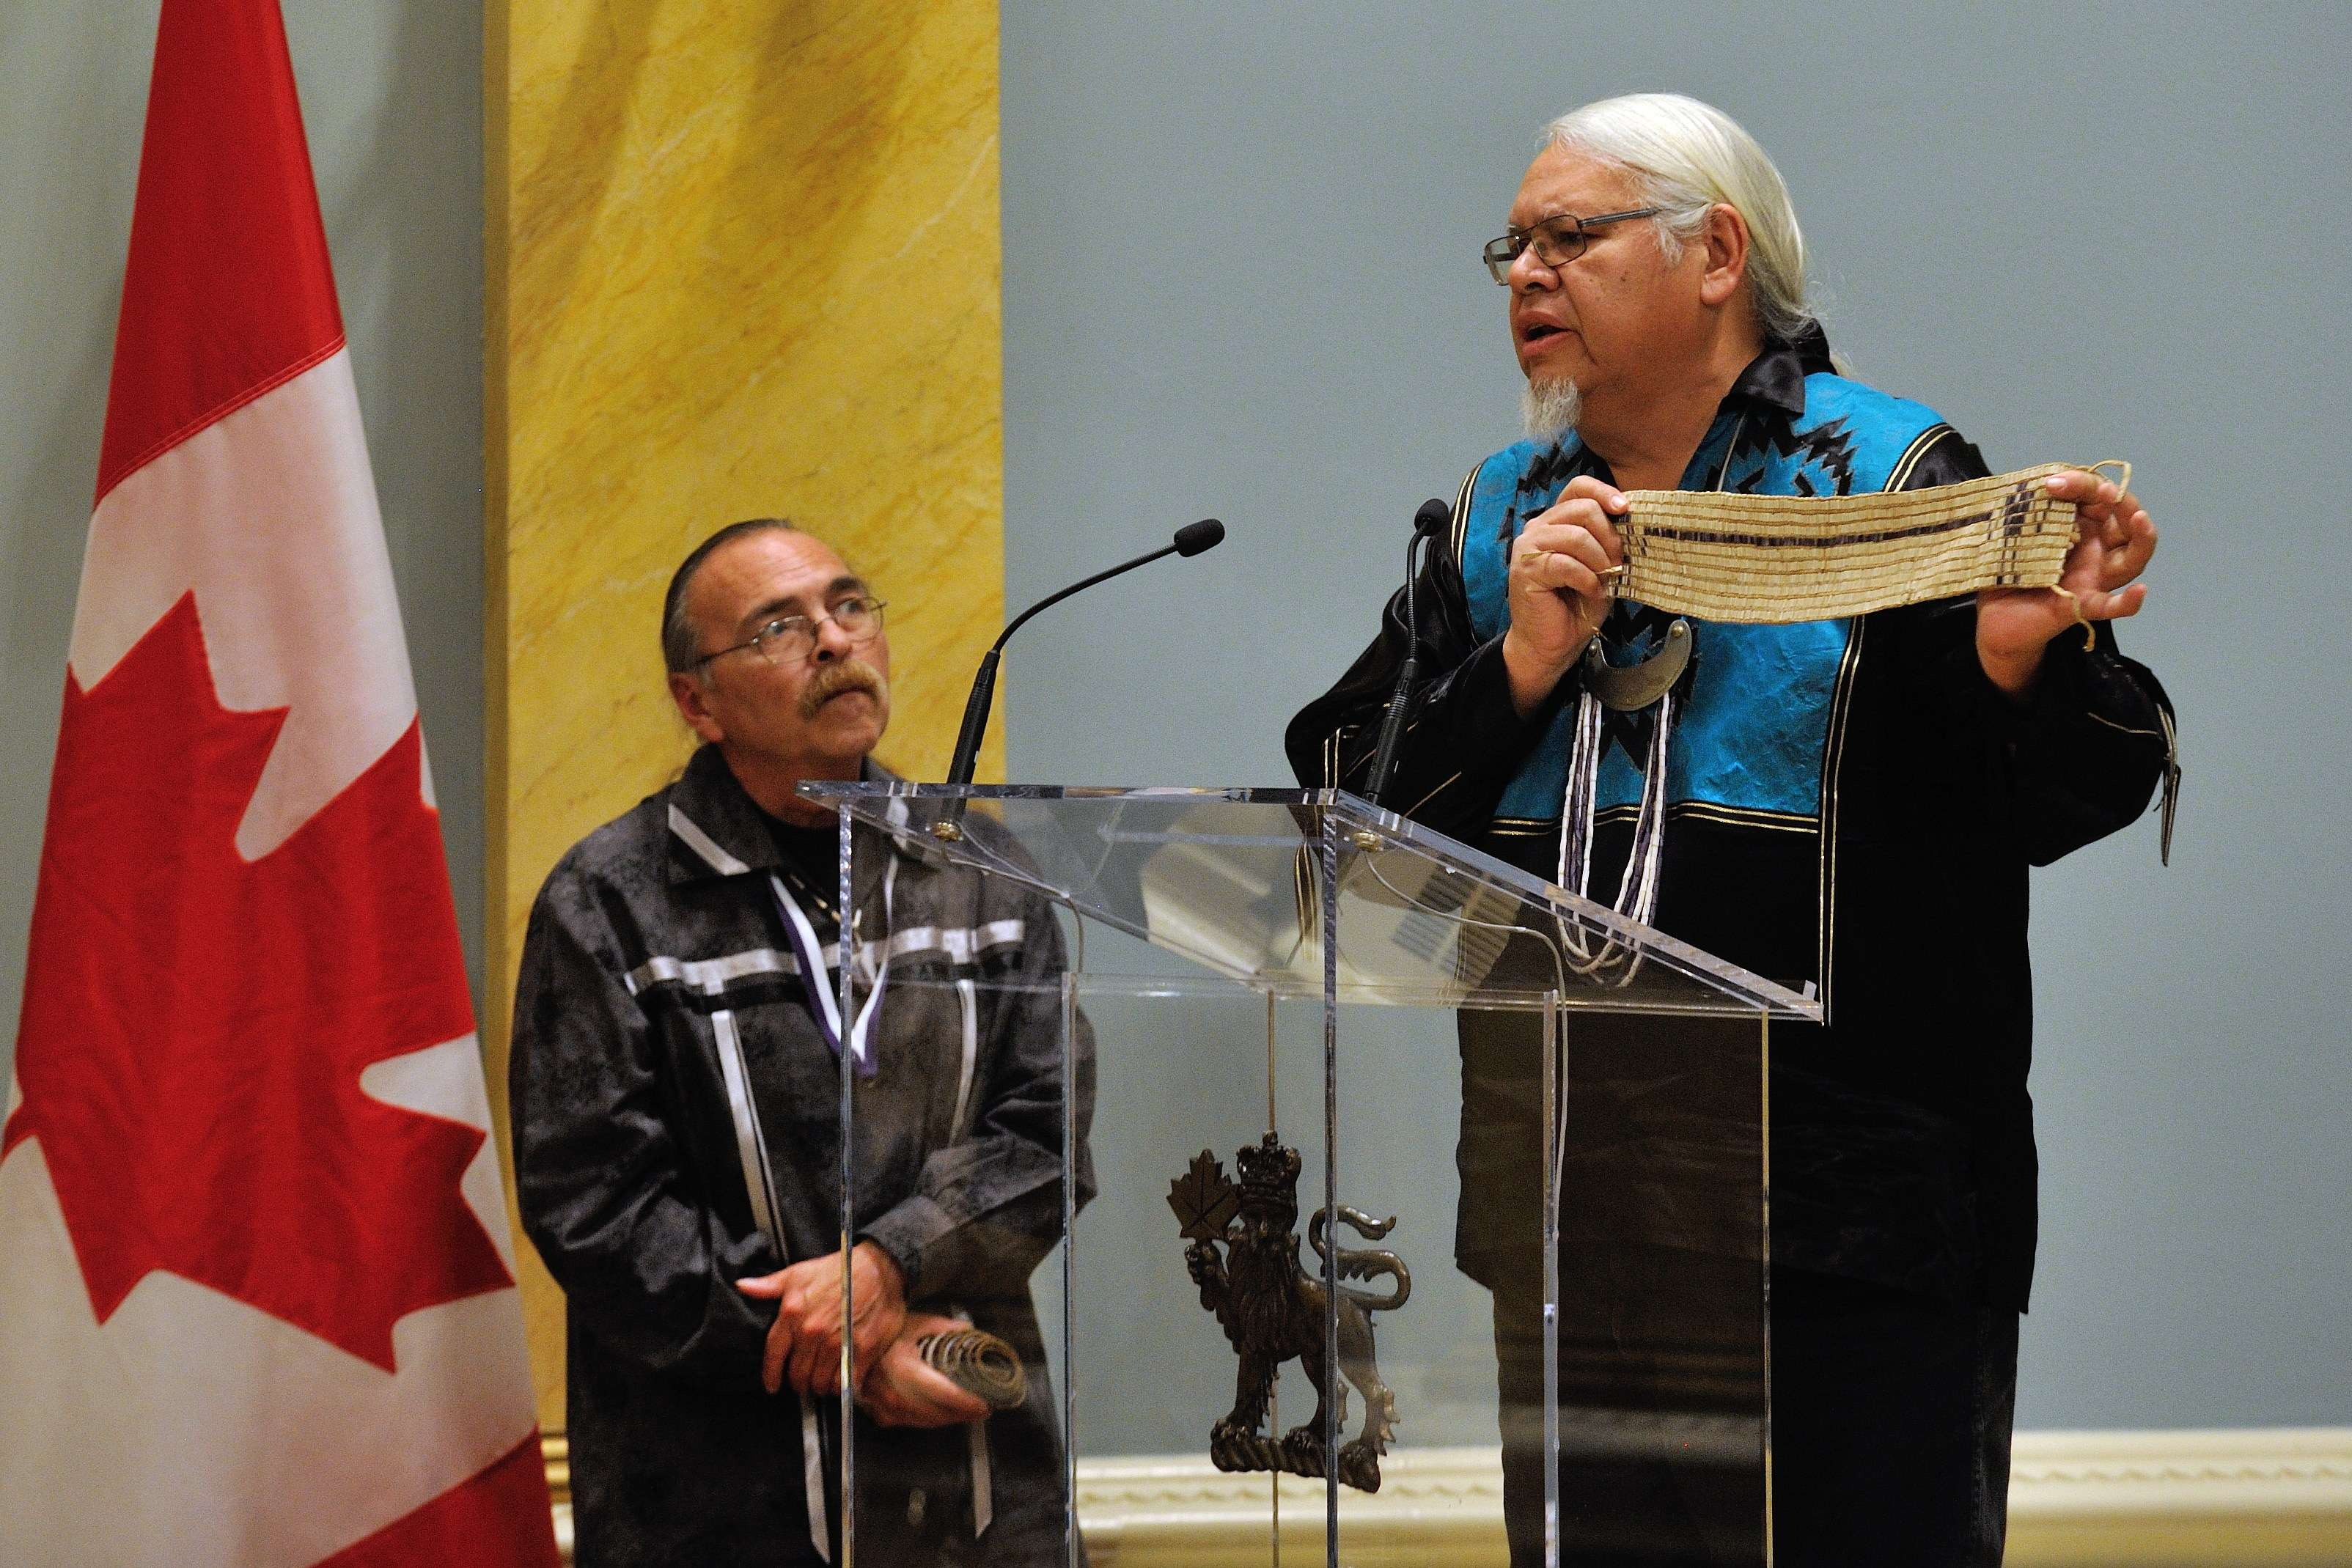 Mr. Rick Hill, of the Six Nations of the Grand River Elected Council and Haudenosaunee Confederacy ended the ceremony by speaking of the 1815 William Claus Belt.